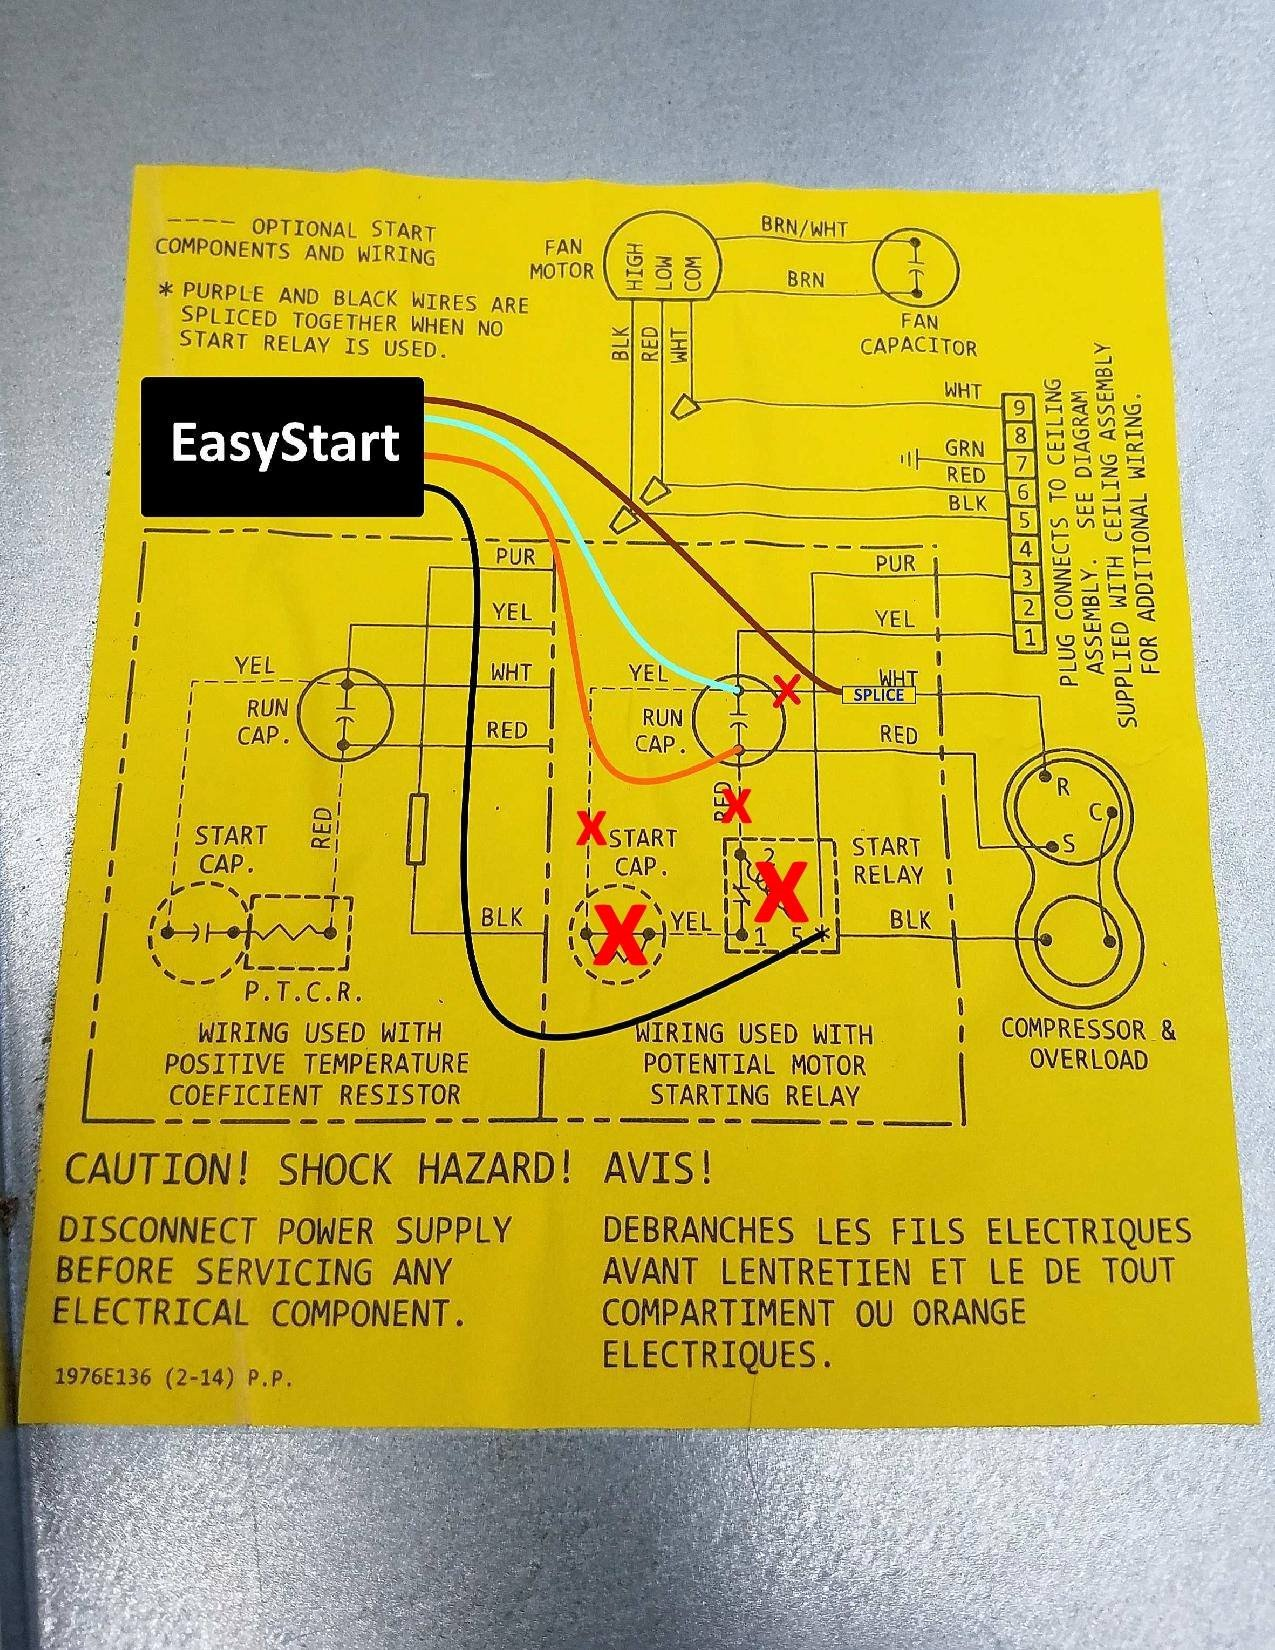 Rv Starter Wiring Diagram Just Another Blog Trailer Converter Easystart Soft Diagrams Resource Page Micro Air Rh Microair Net